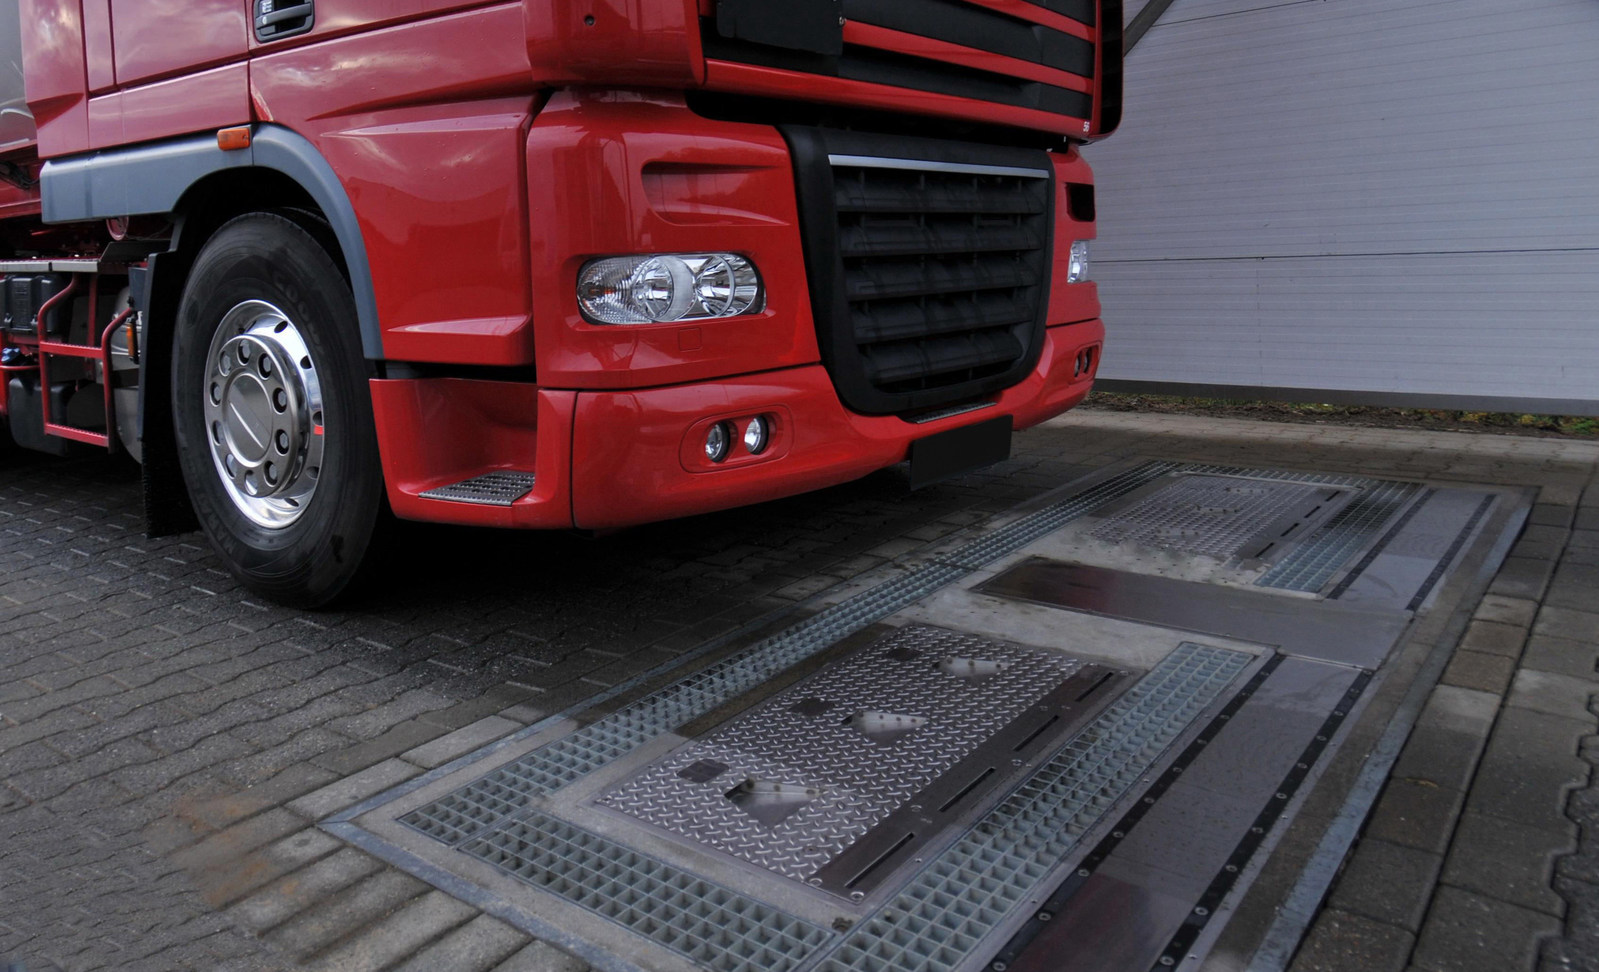 A truck prepares to drive over a fully-automated tire inspection system made by Ventech Systems GmbH. The innovative device can quickly and easily check tire pressure, tread depth and vehicle weight. The Goodyear Tire & Rubber Company has agreed to acquire Ventech Systems of Dorsten, Germany, from Grenzebach Maschinenbau GmbH. (PRNewsfoto/The Goodyear Tire & Rubber Comp)